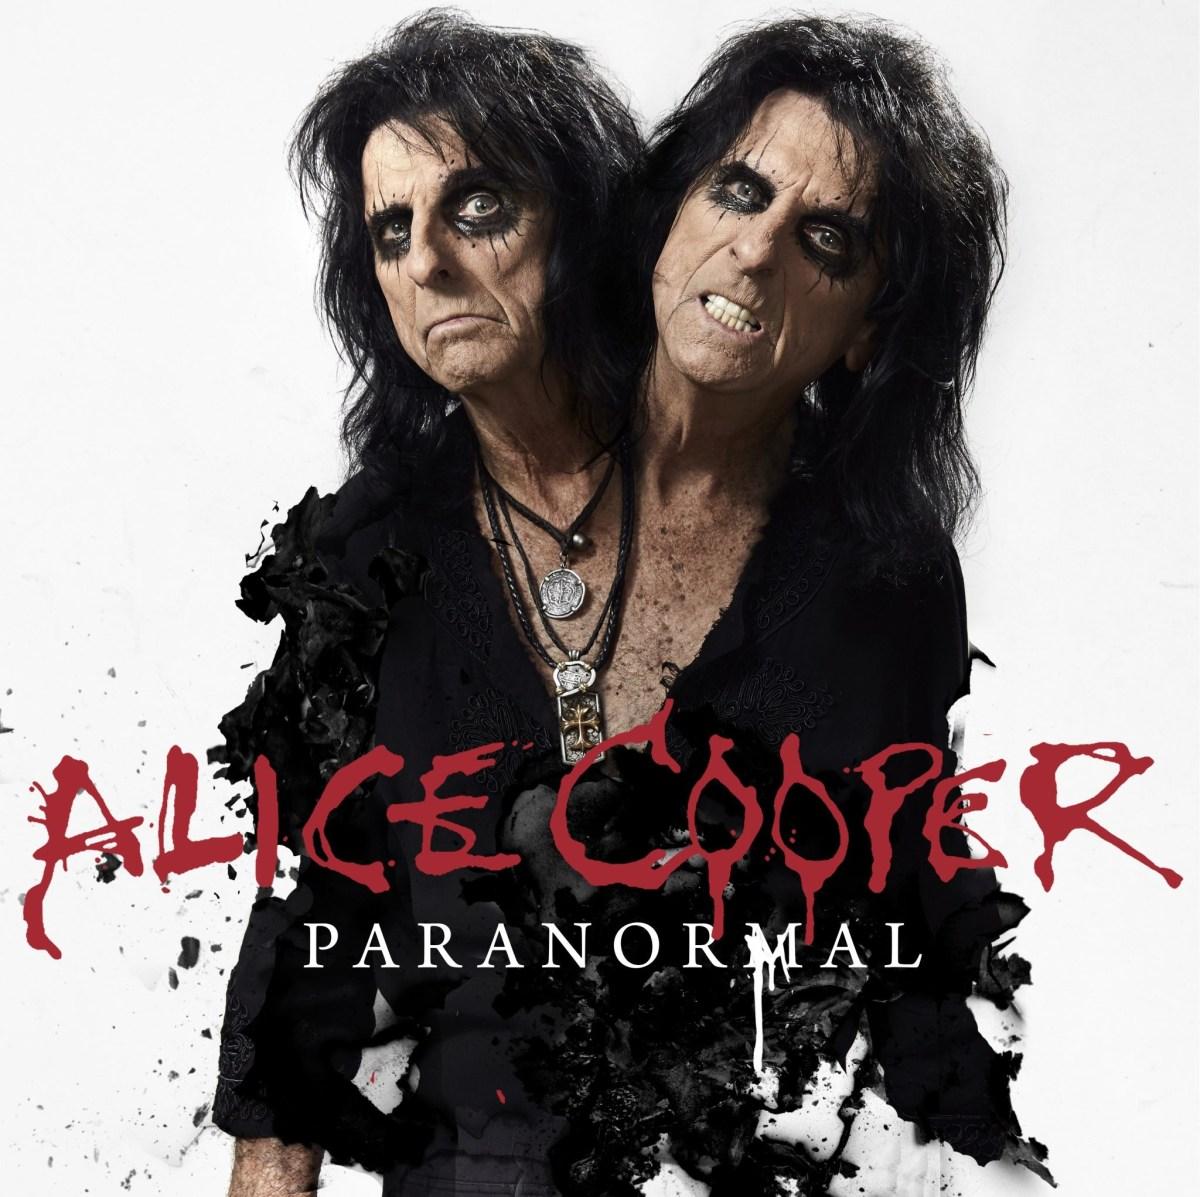 Alice Cooper – Paranormal (Album Review)